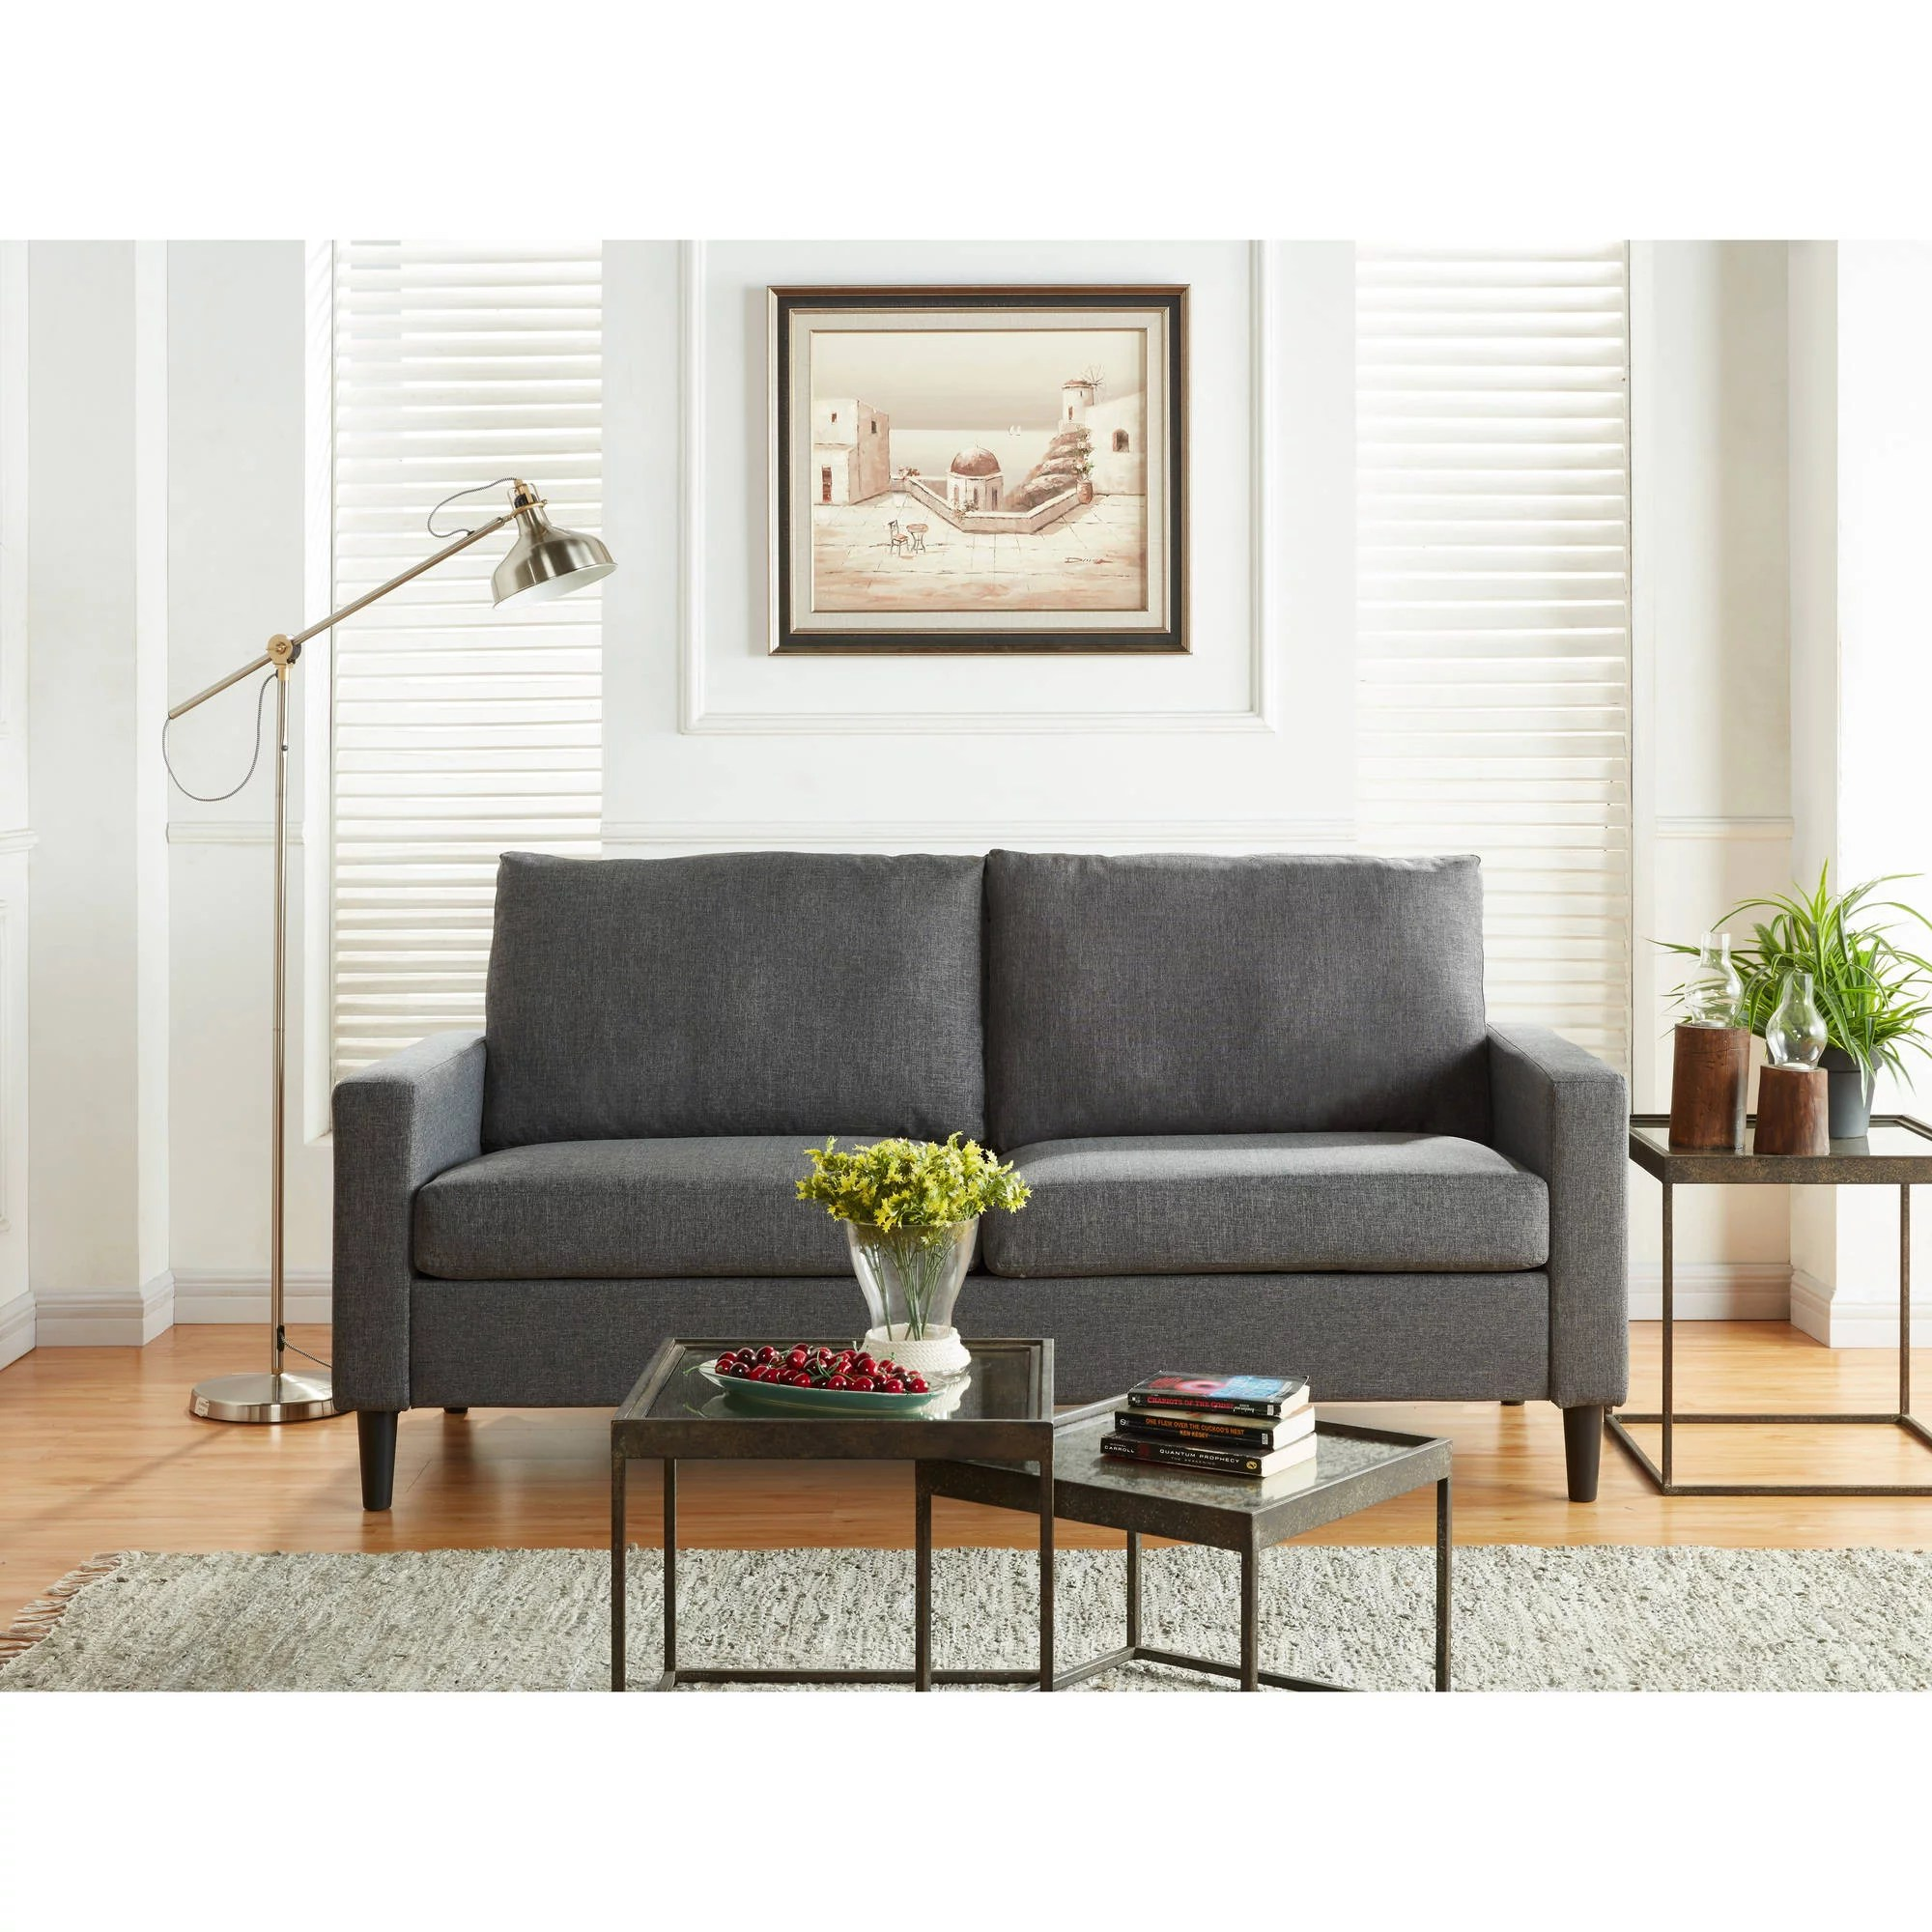 Gray Sofas For Living Room Mainstays 72 5